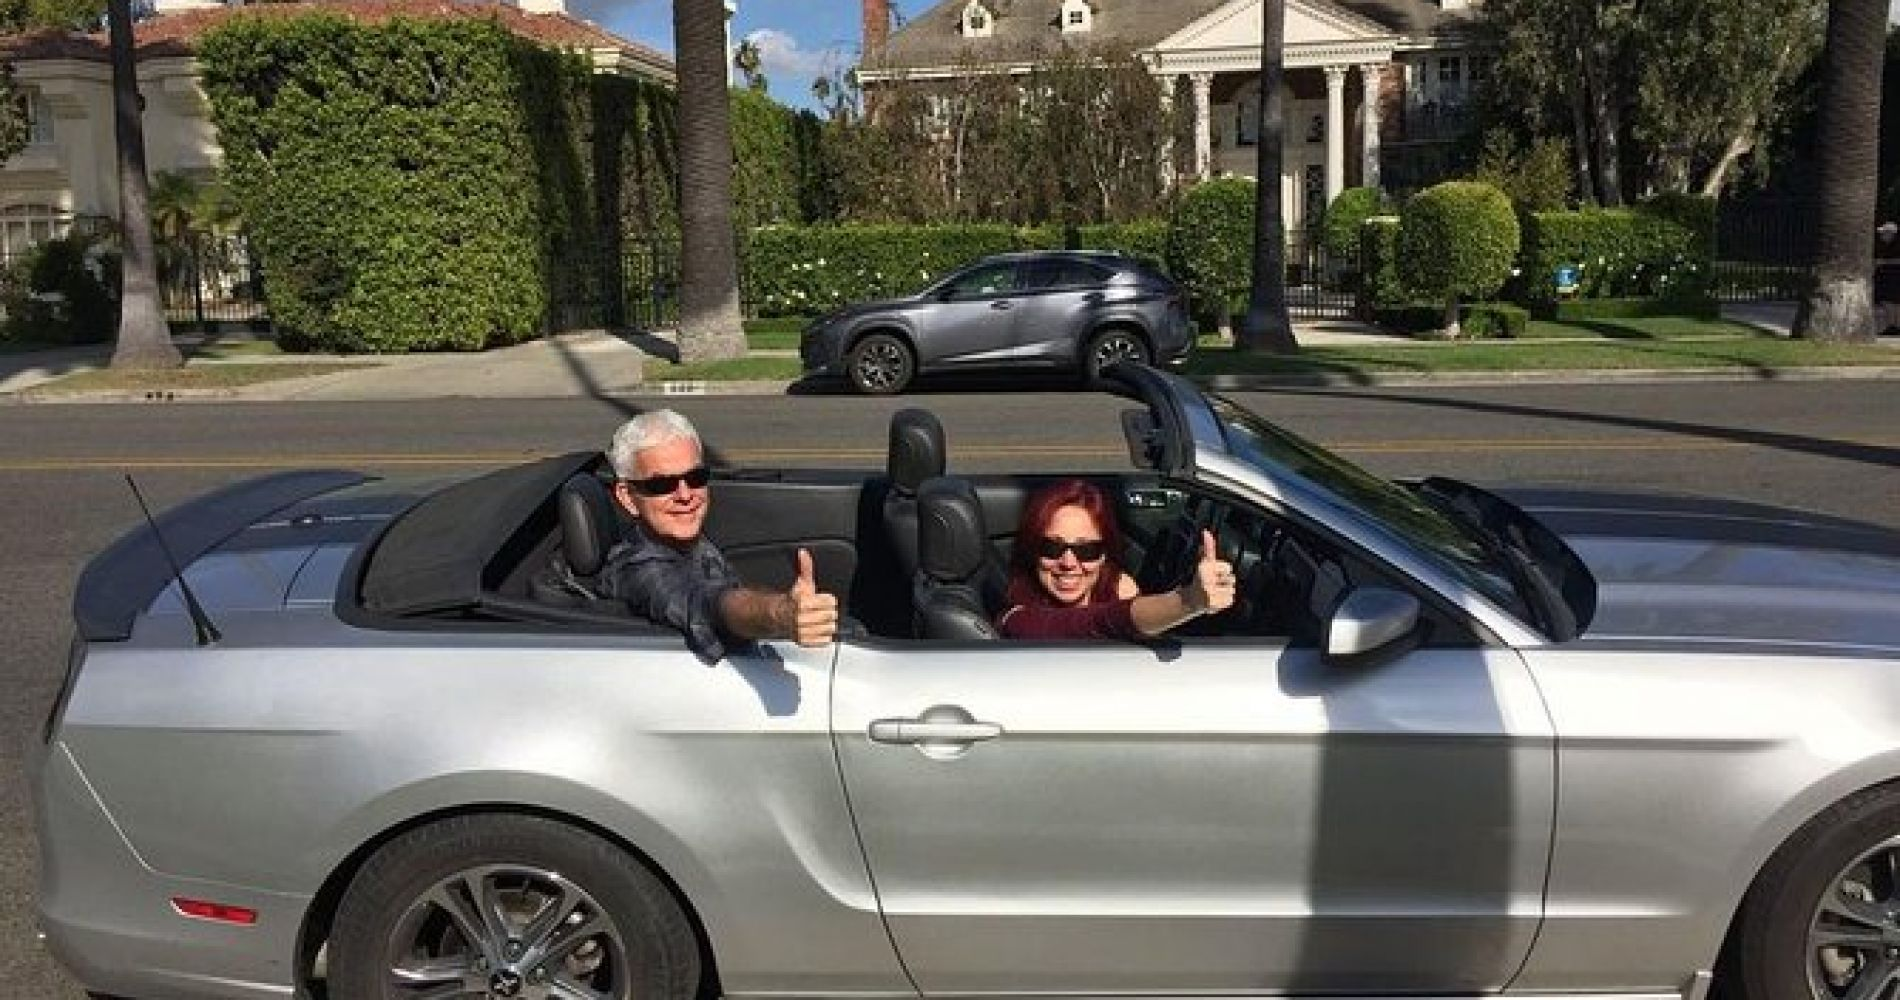 VIP Mustang Celebrity Tour (2 hours)